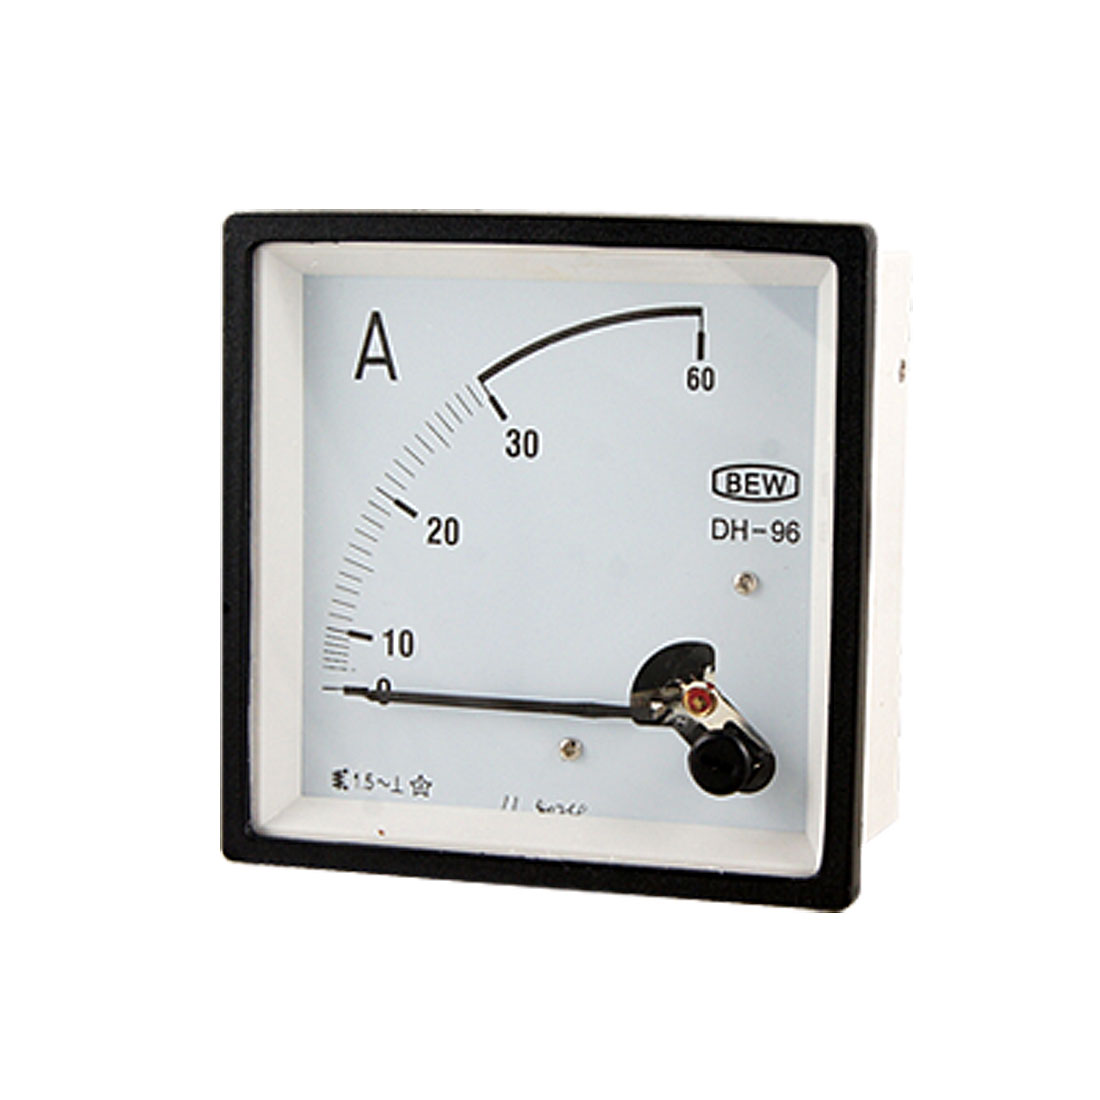 DH-96 AC 0-30A Square Analog Current Panel Ammeter Gauge